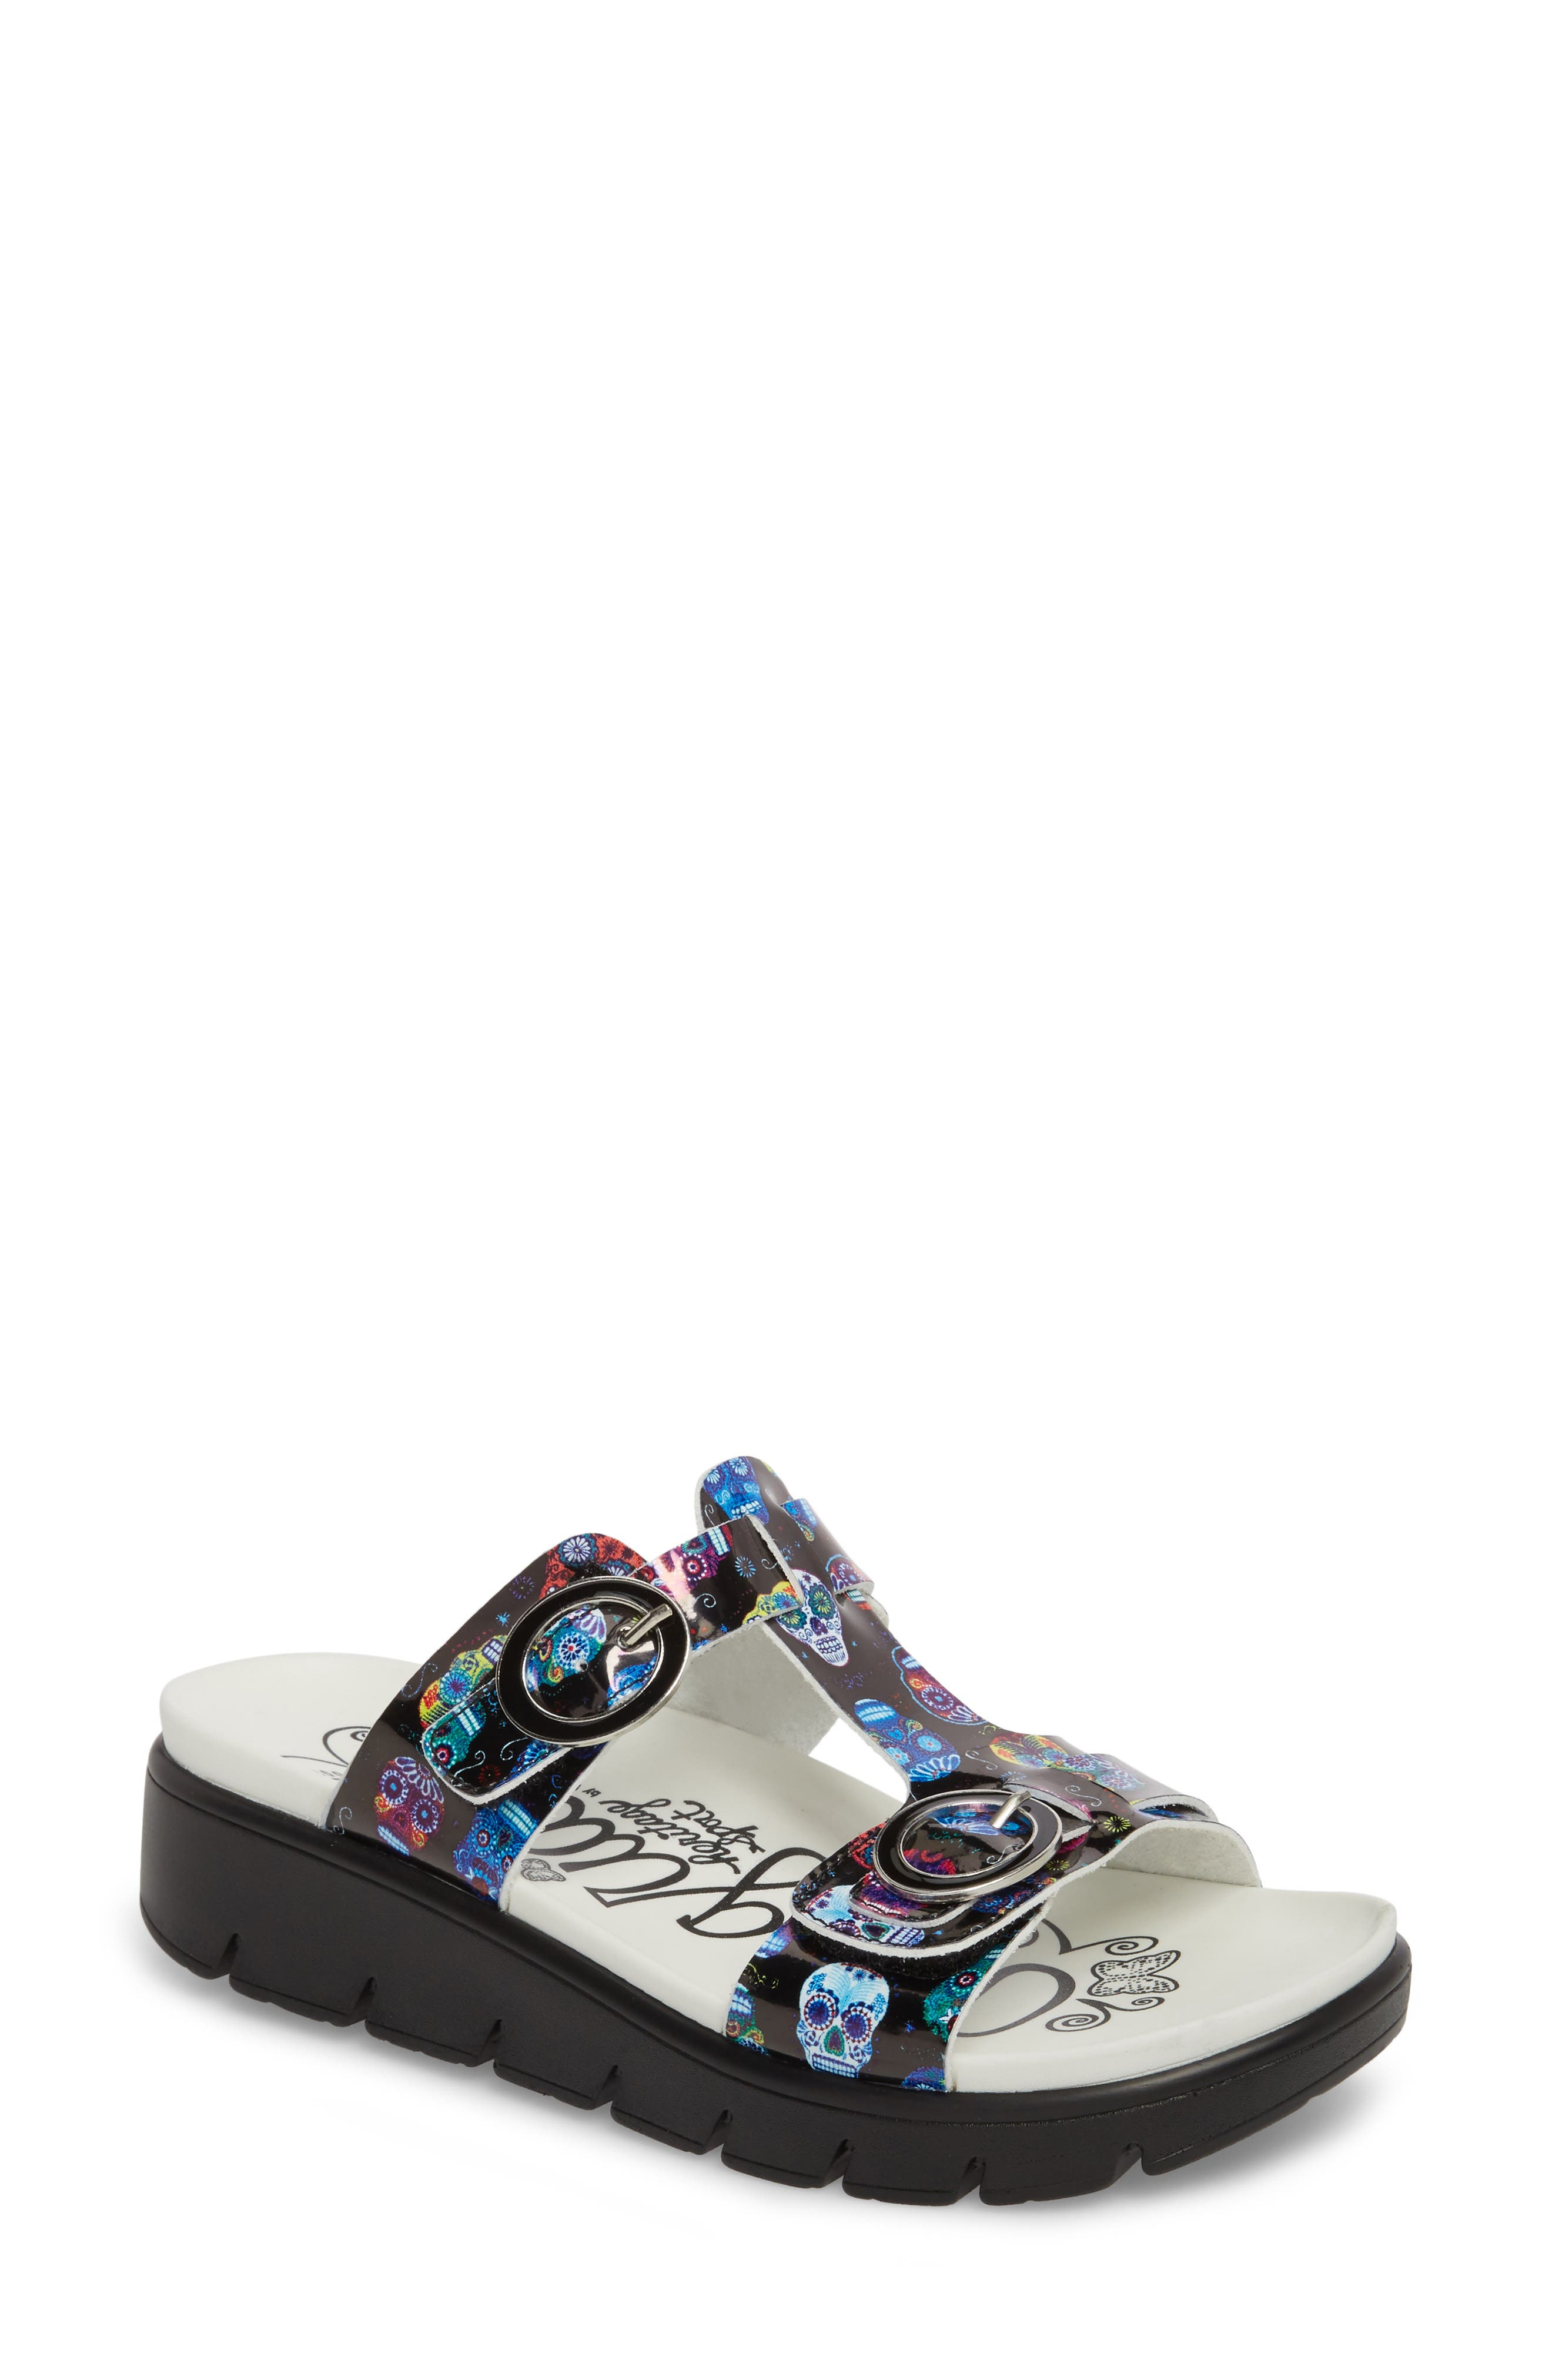 Vita Sandal,                             Main thumbnail 1, color,                             SUGAR SKULLS LEATHER